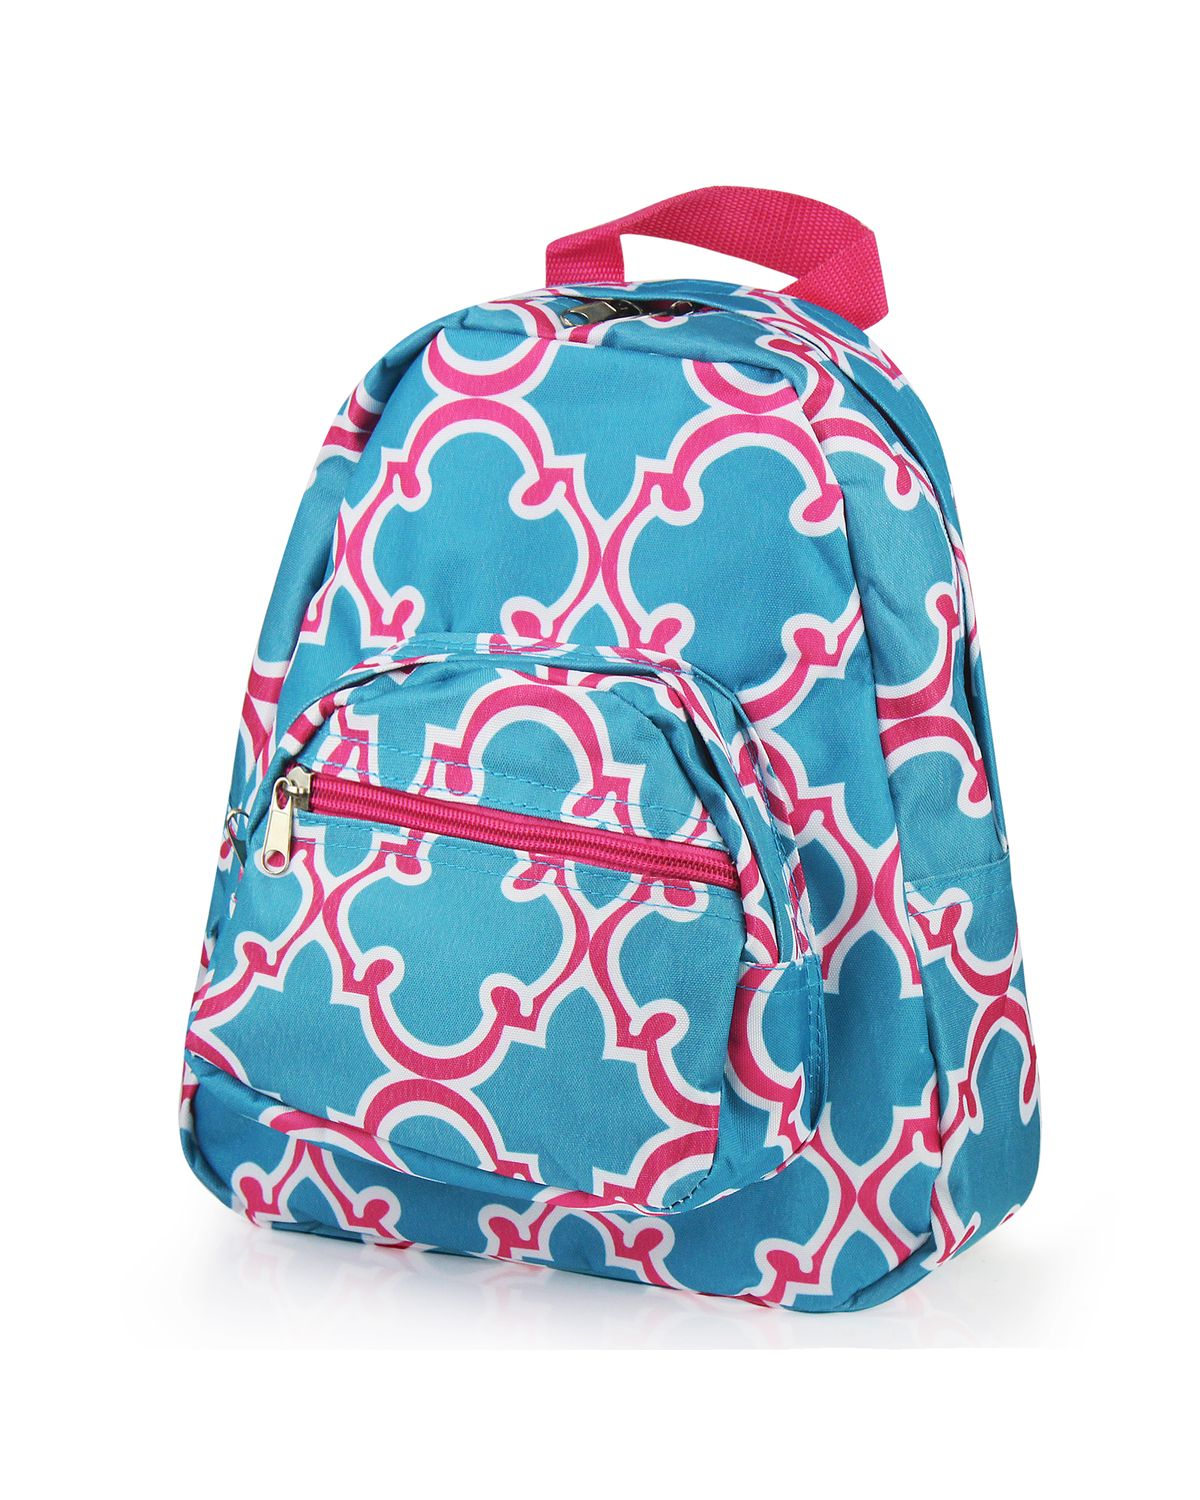 Kids Small Backpack by Zodaca Bright Stylish Outdoor Shoulder School Zipper Bag Adjustable Strap Blue Quatrefoil by